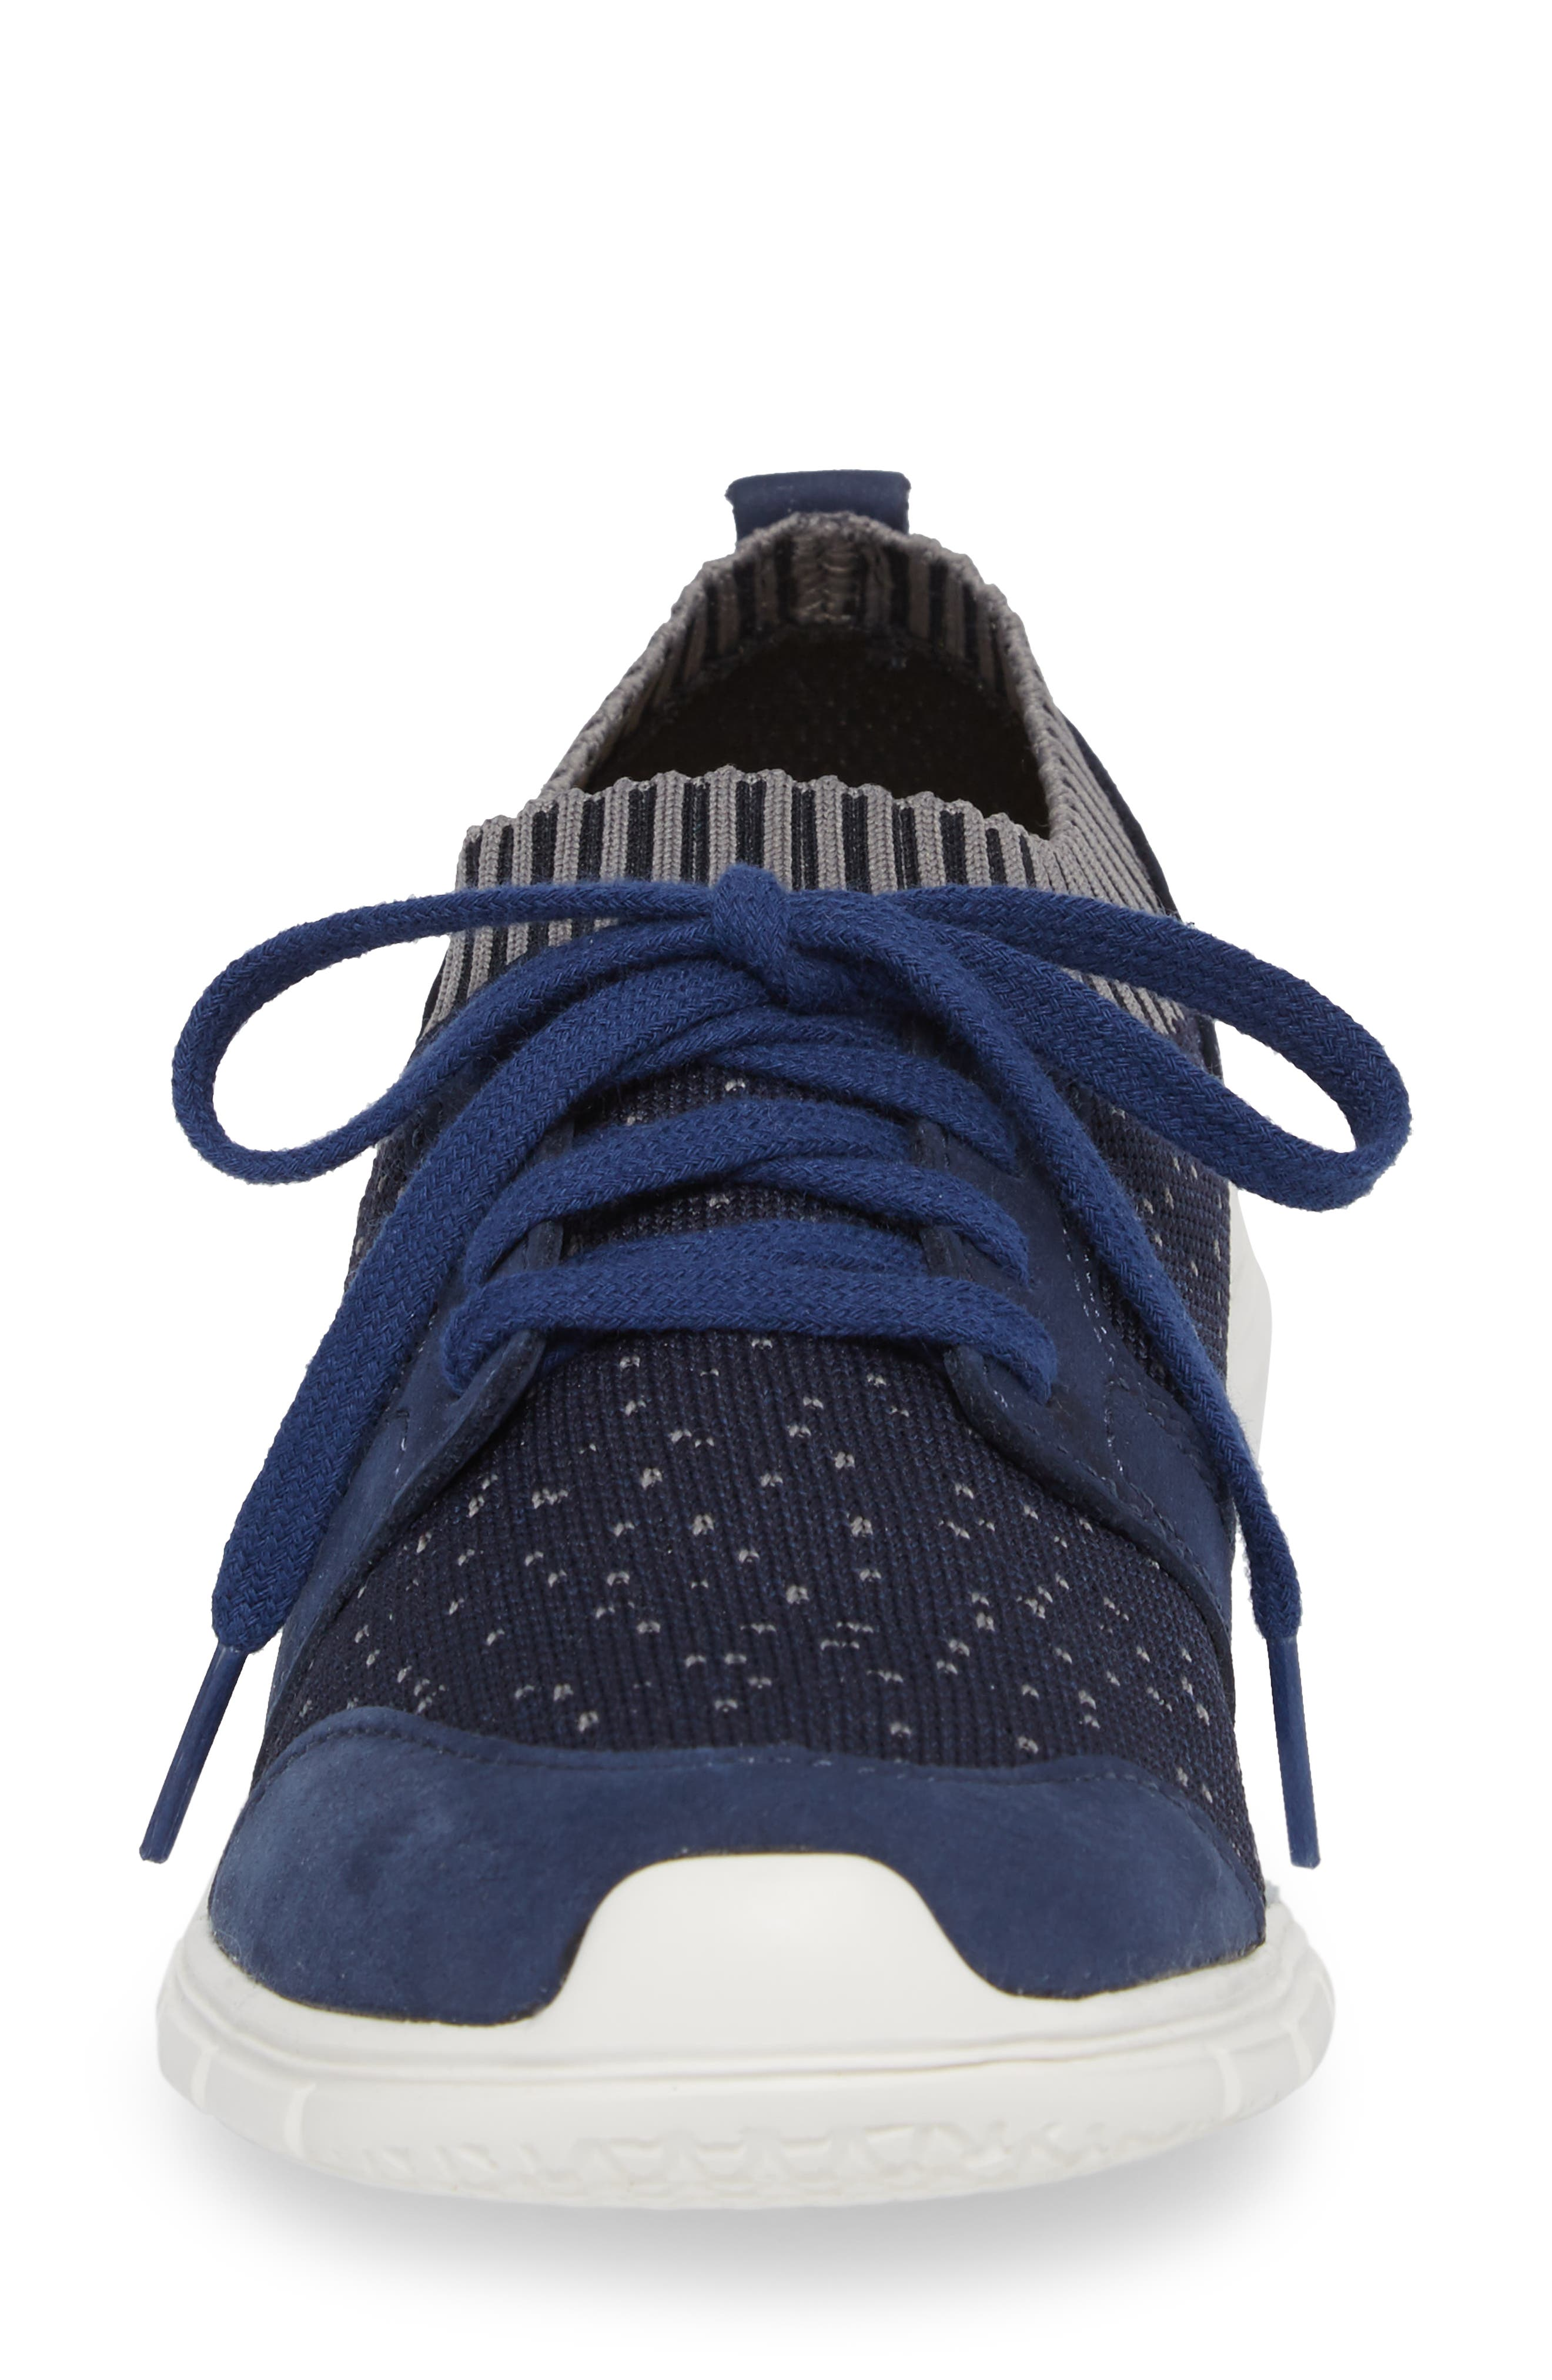 Cypress Knit Sneaker,                             Alternate thumbnail 4, color,                             Royal Navy Fabric